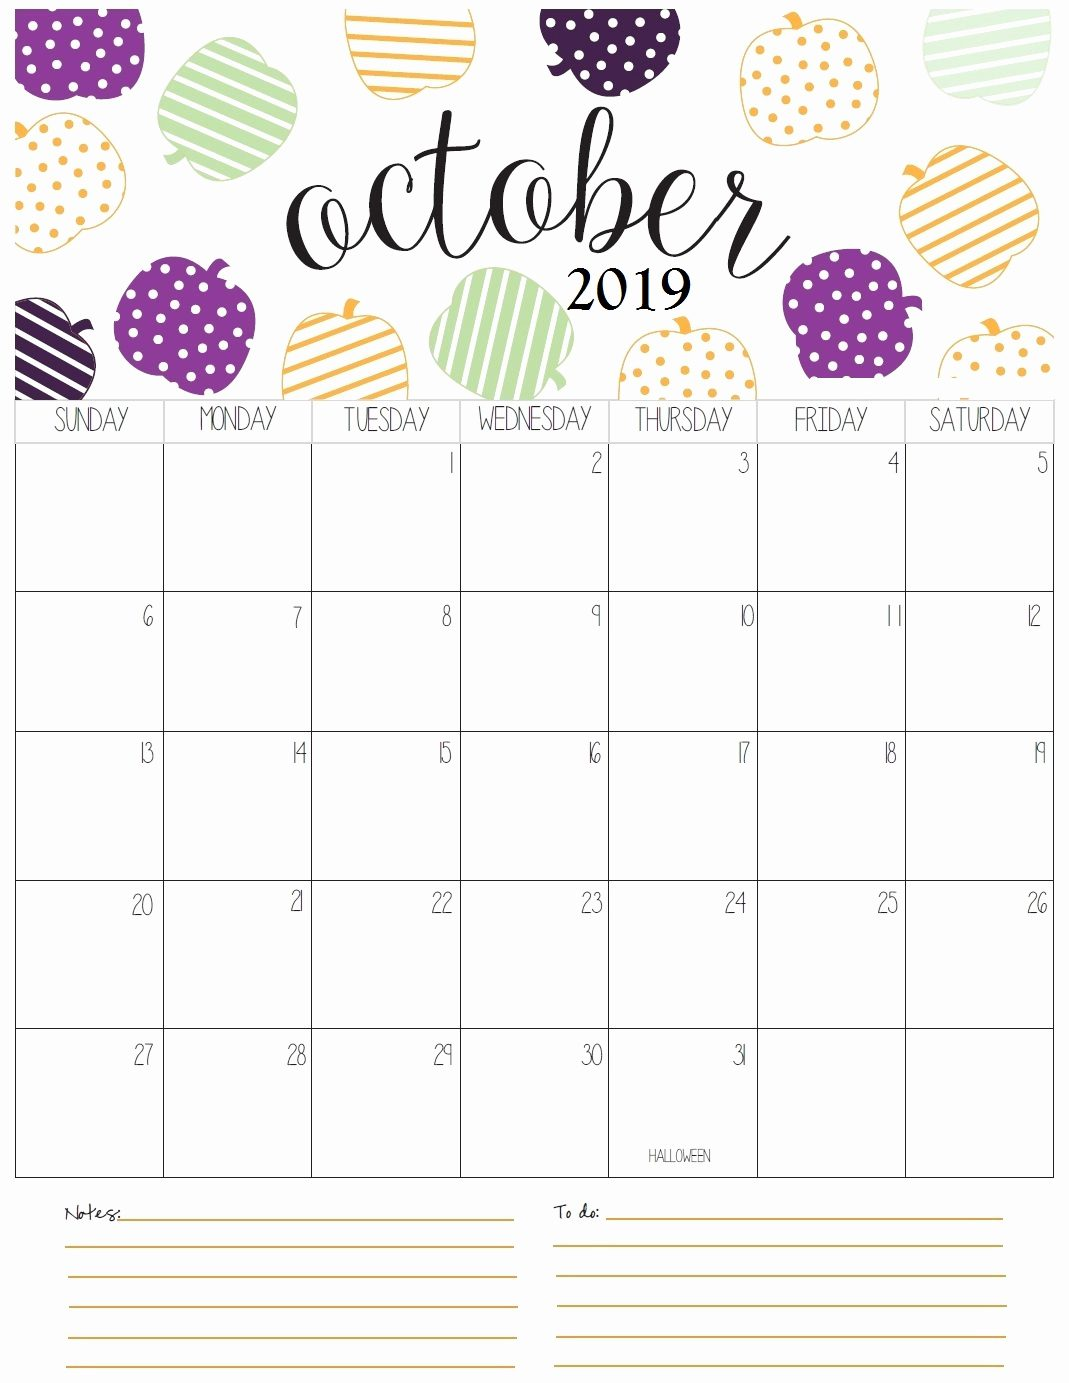 Blank October 2019 Calendar Download